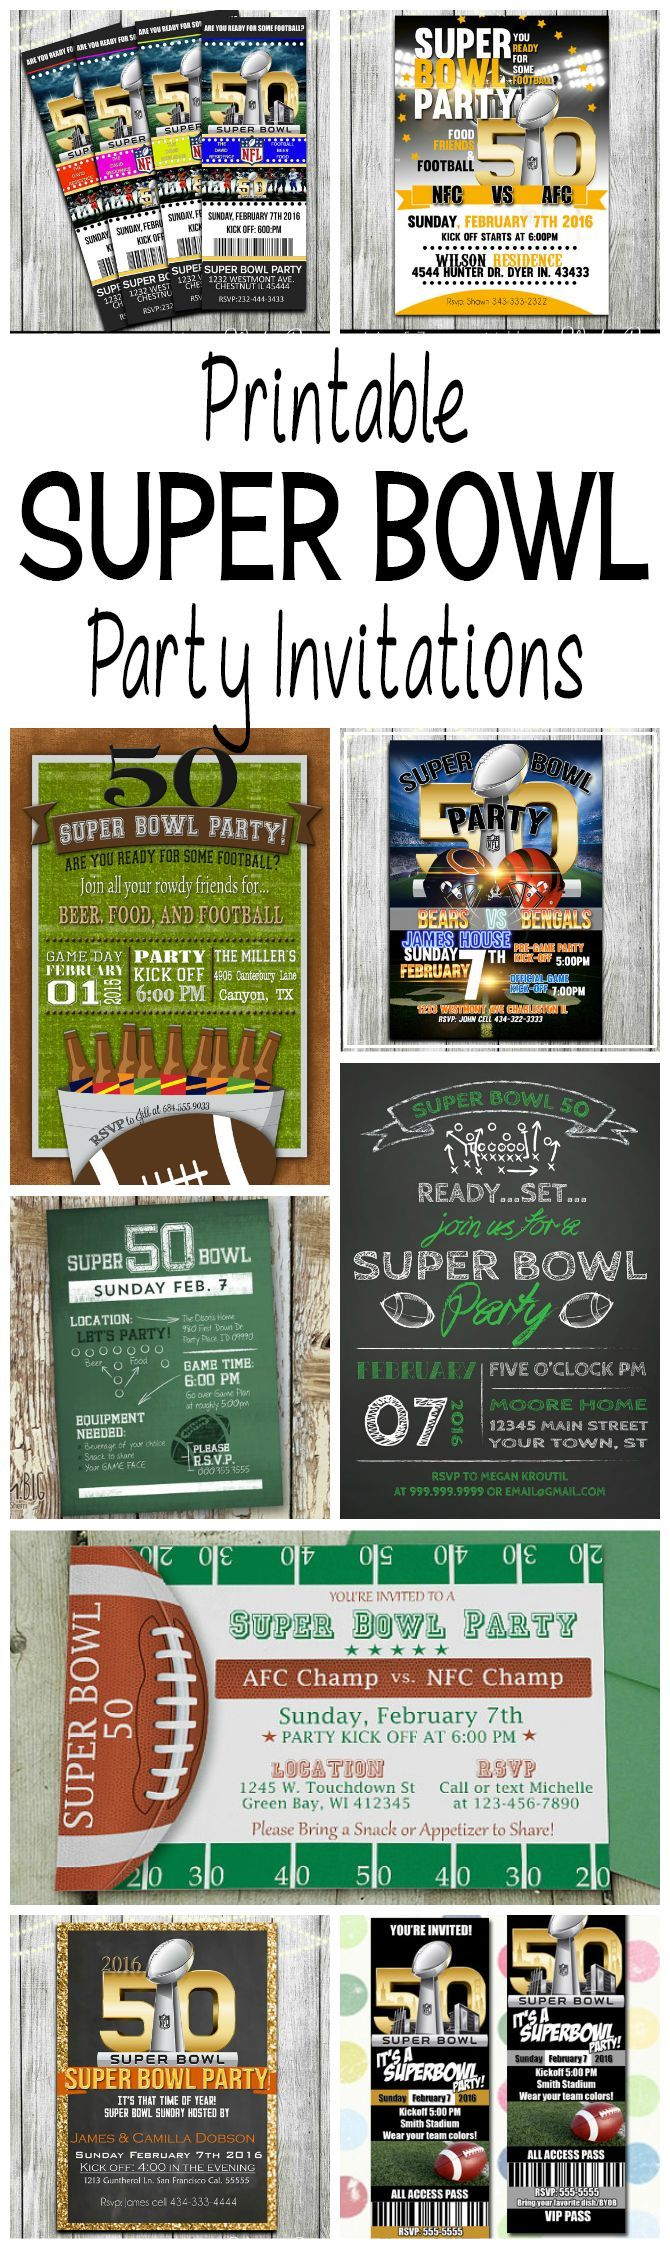 Super Bowl Party Invitations halloween party invitation text buy – Super Bowl Party Invitation Template